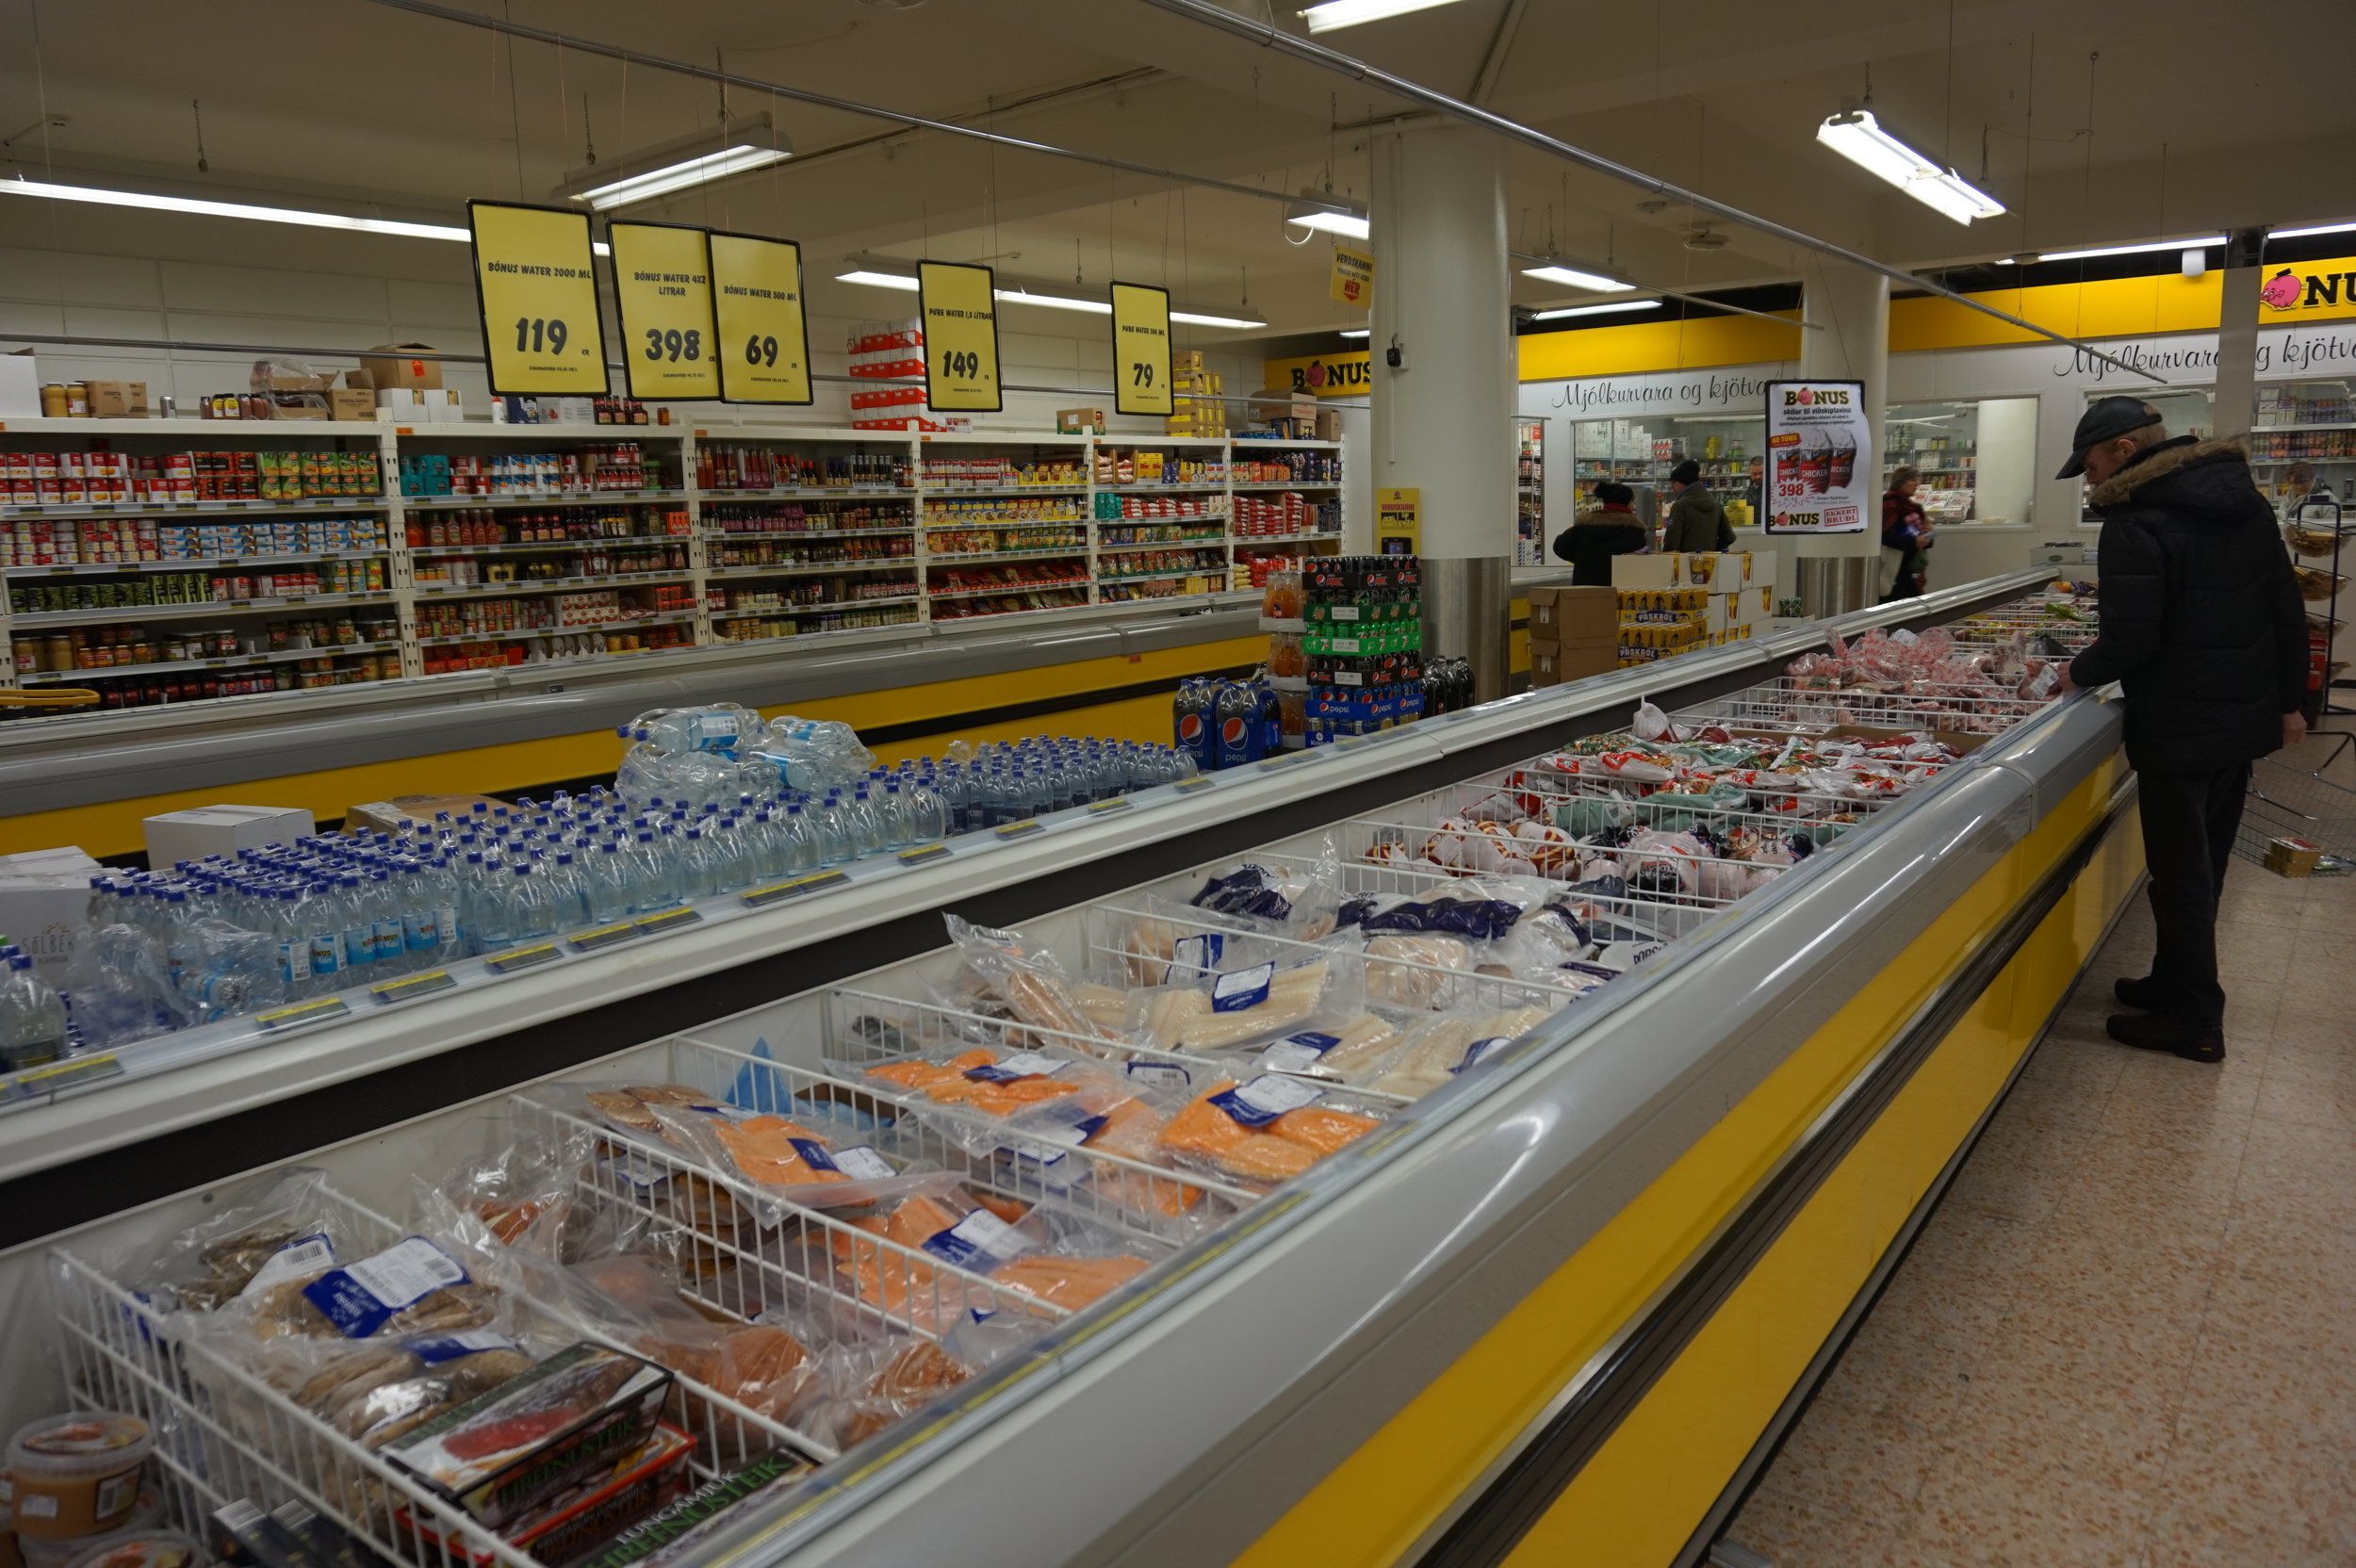 Inside the Bonus supermarket on Laugavegur - one of Reykjavik's main shopping streets.